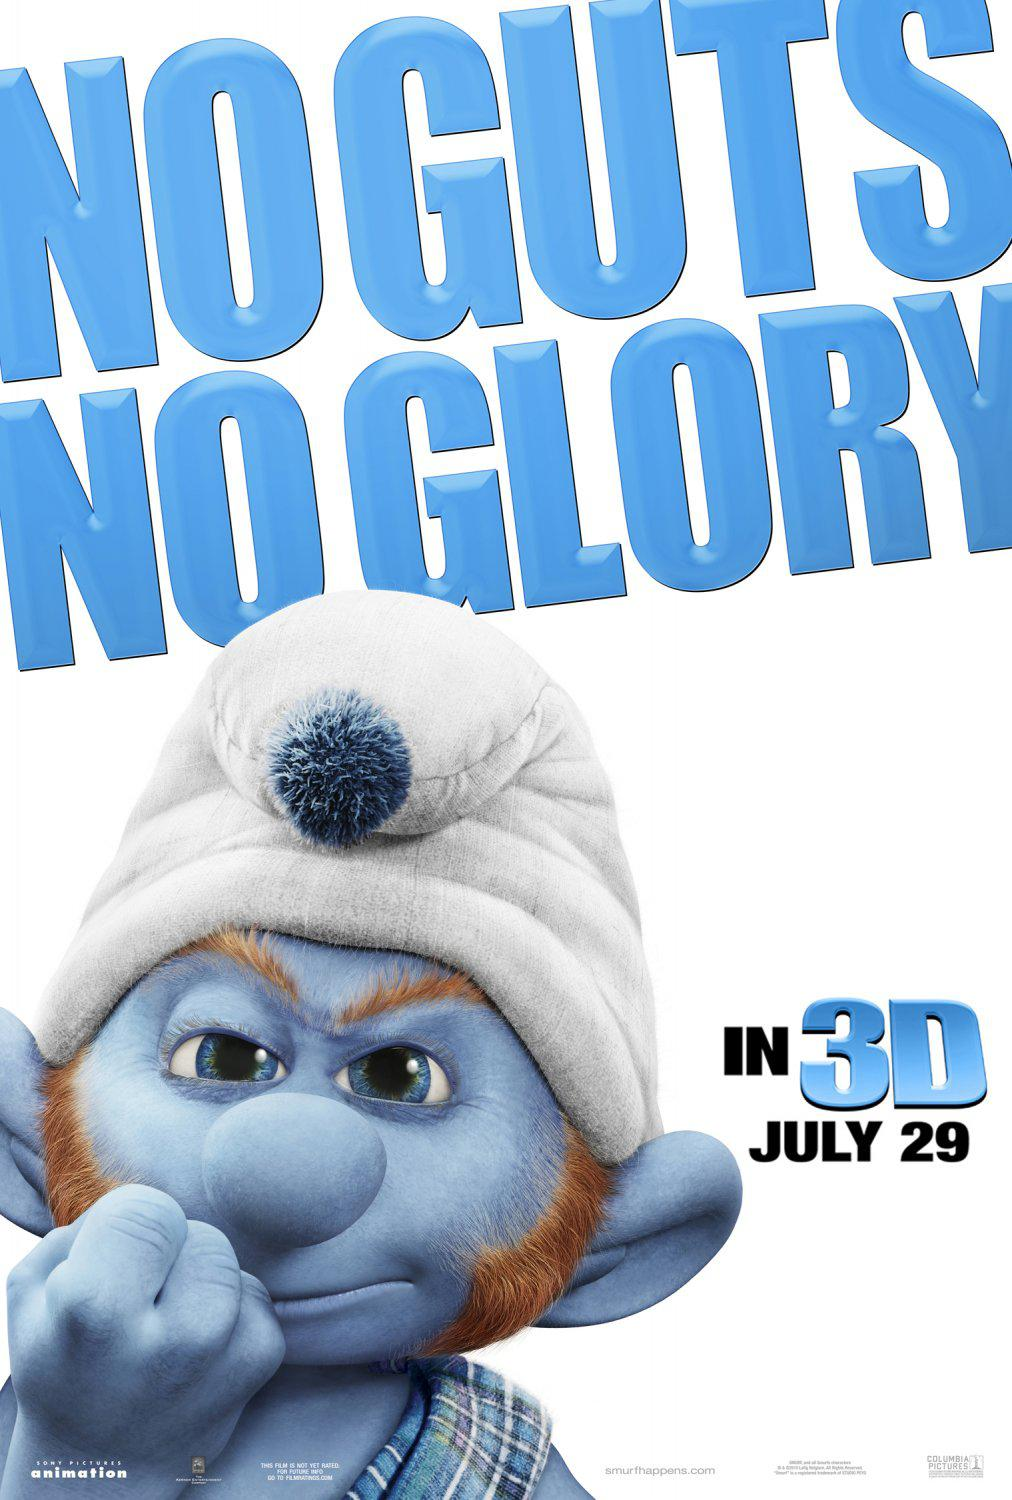 Film I Puffi in 3D - Movie Smurfs in 3D - No Guts No Glory